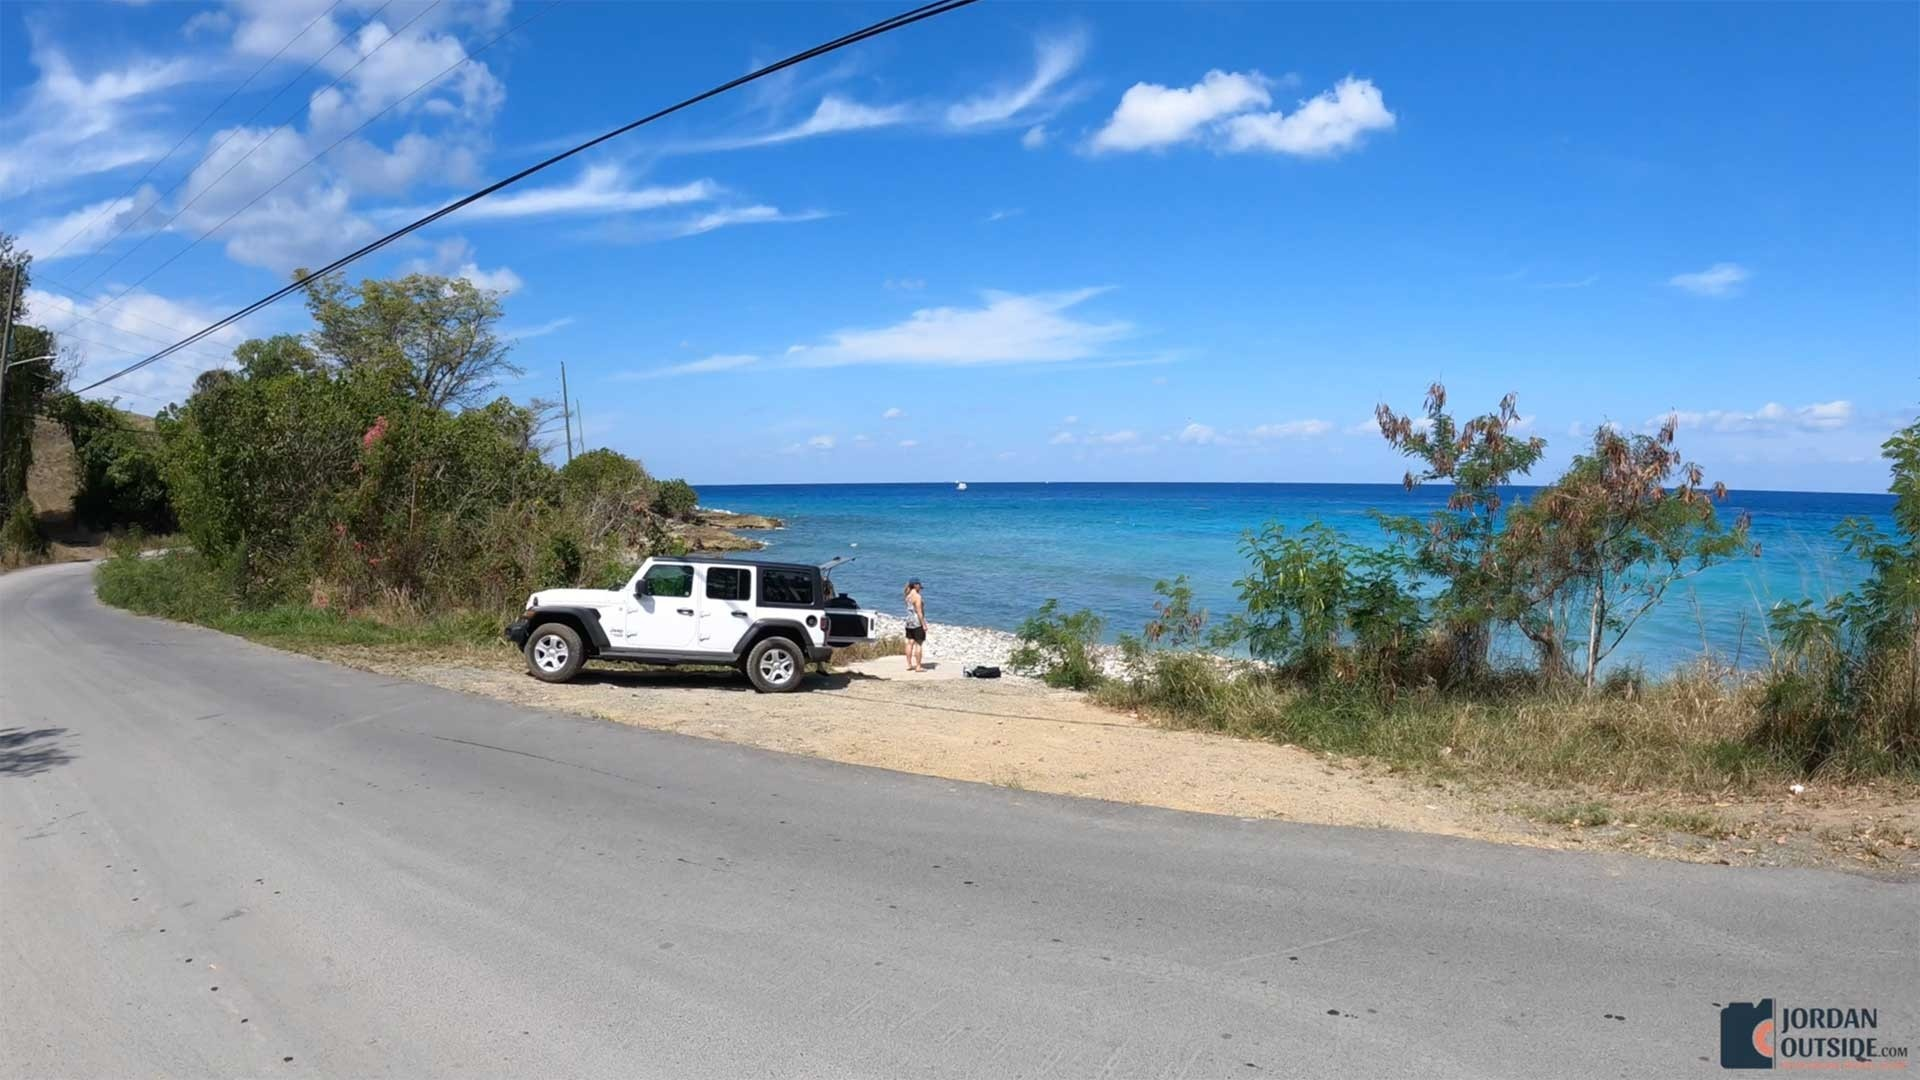 Parking Area at Butler Bay Beach, St. Croix